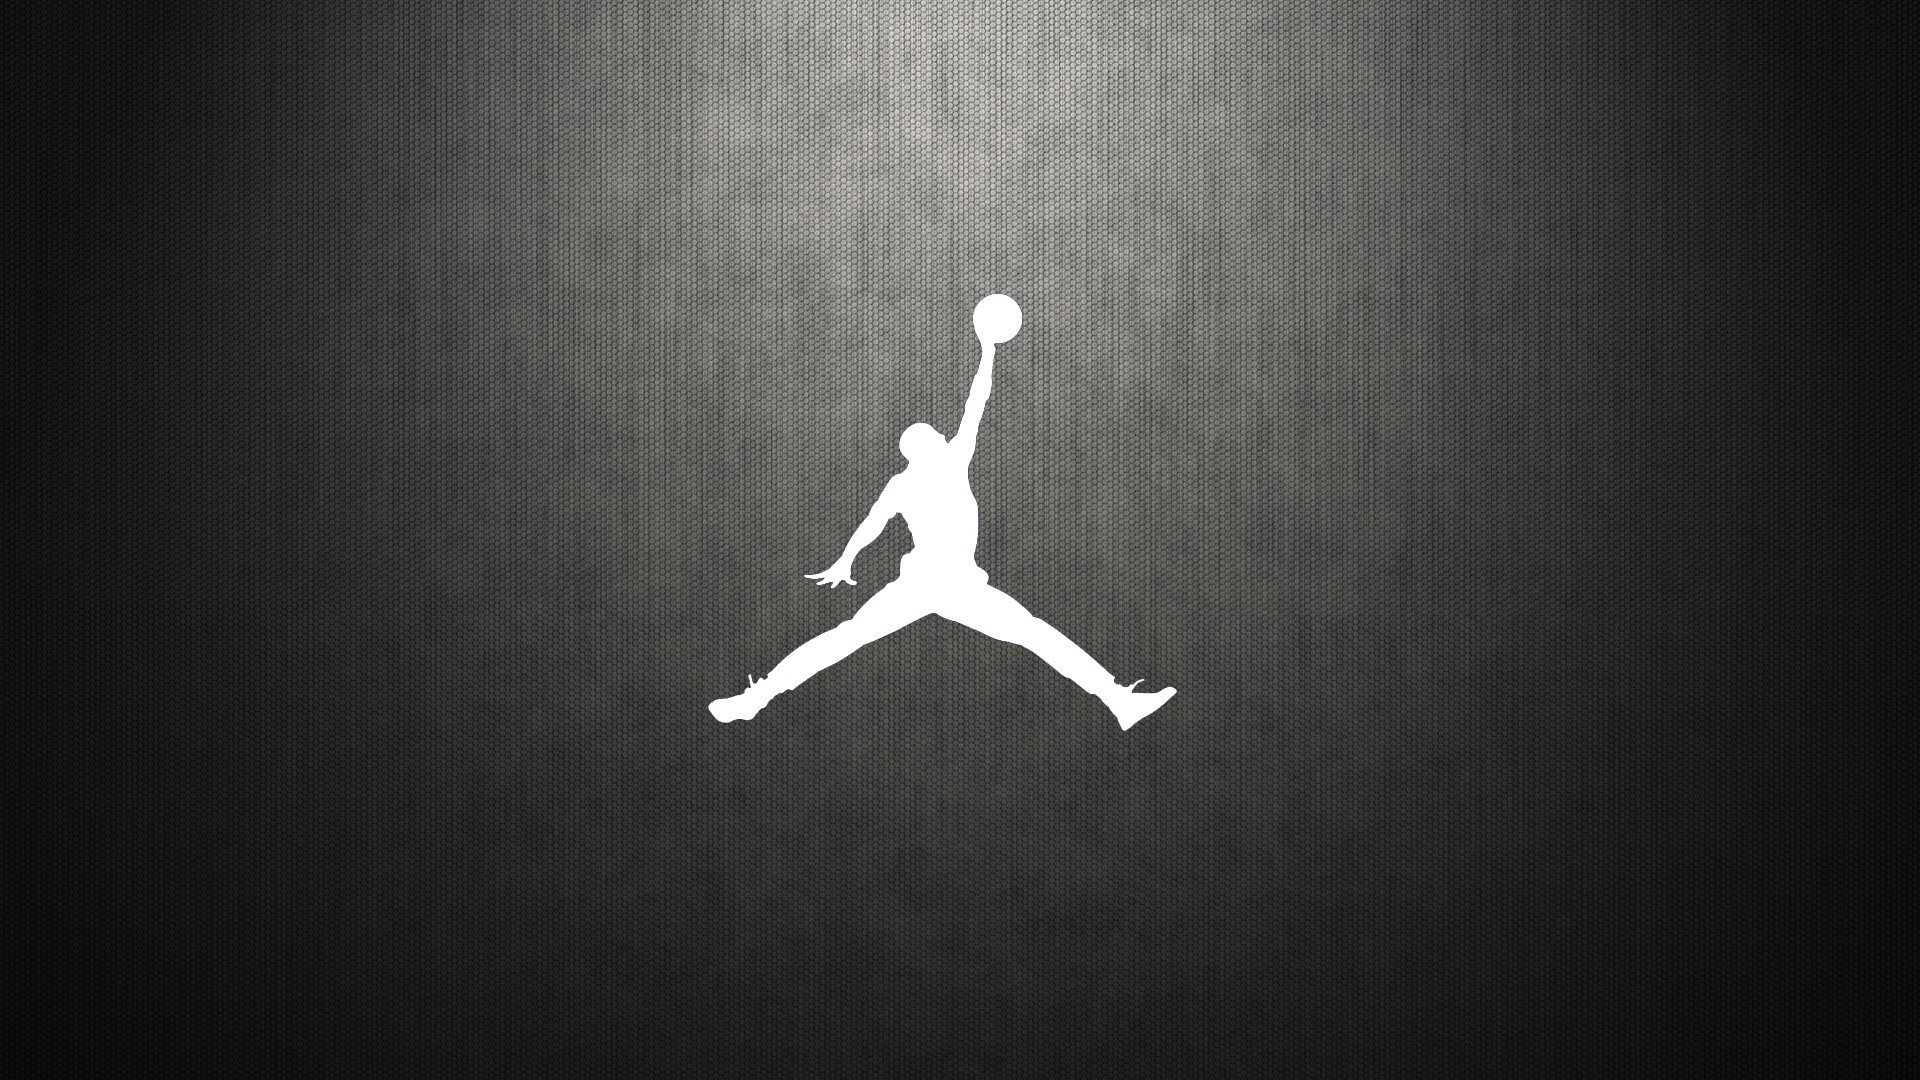 Res: 1920x1080, Nike Black Backgrounds.